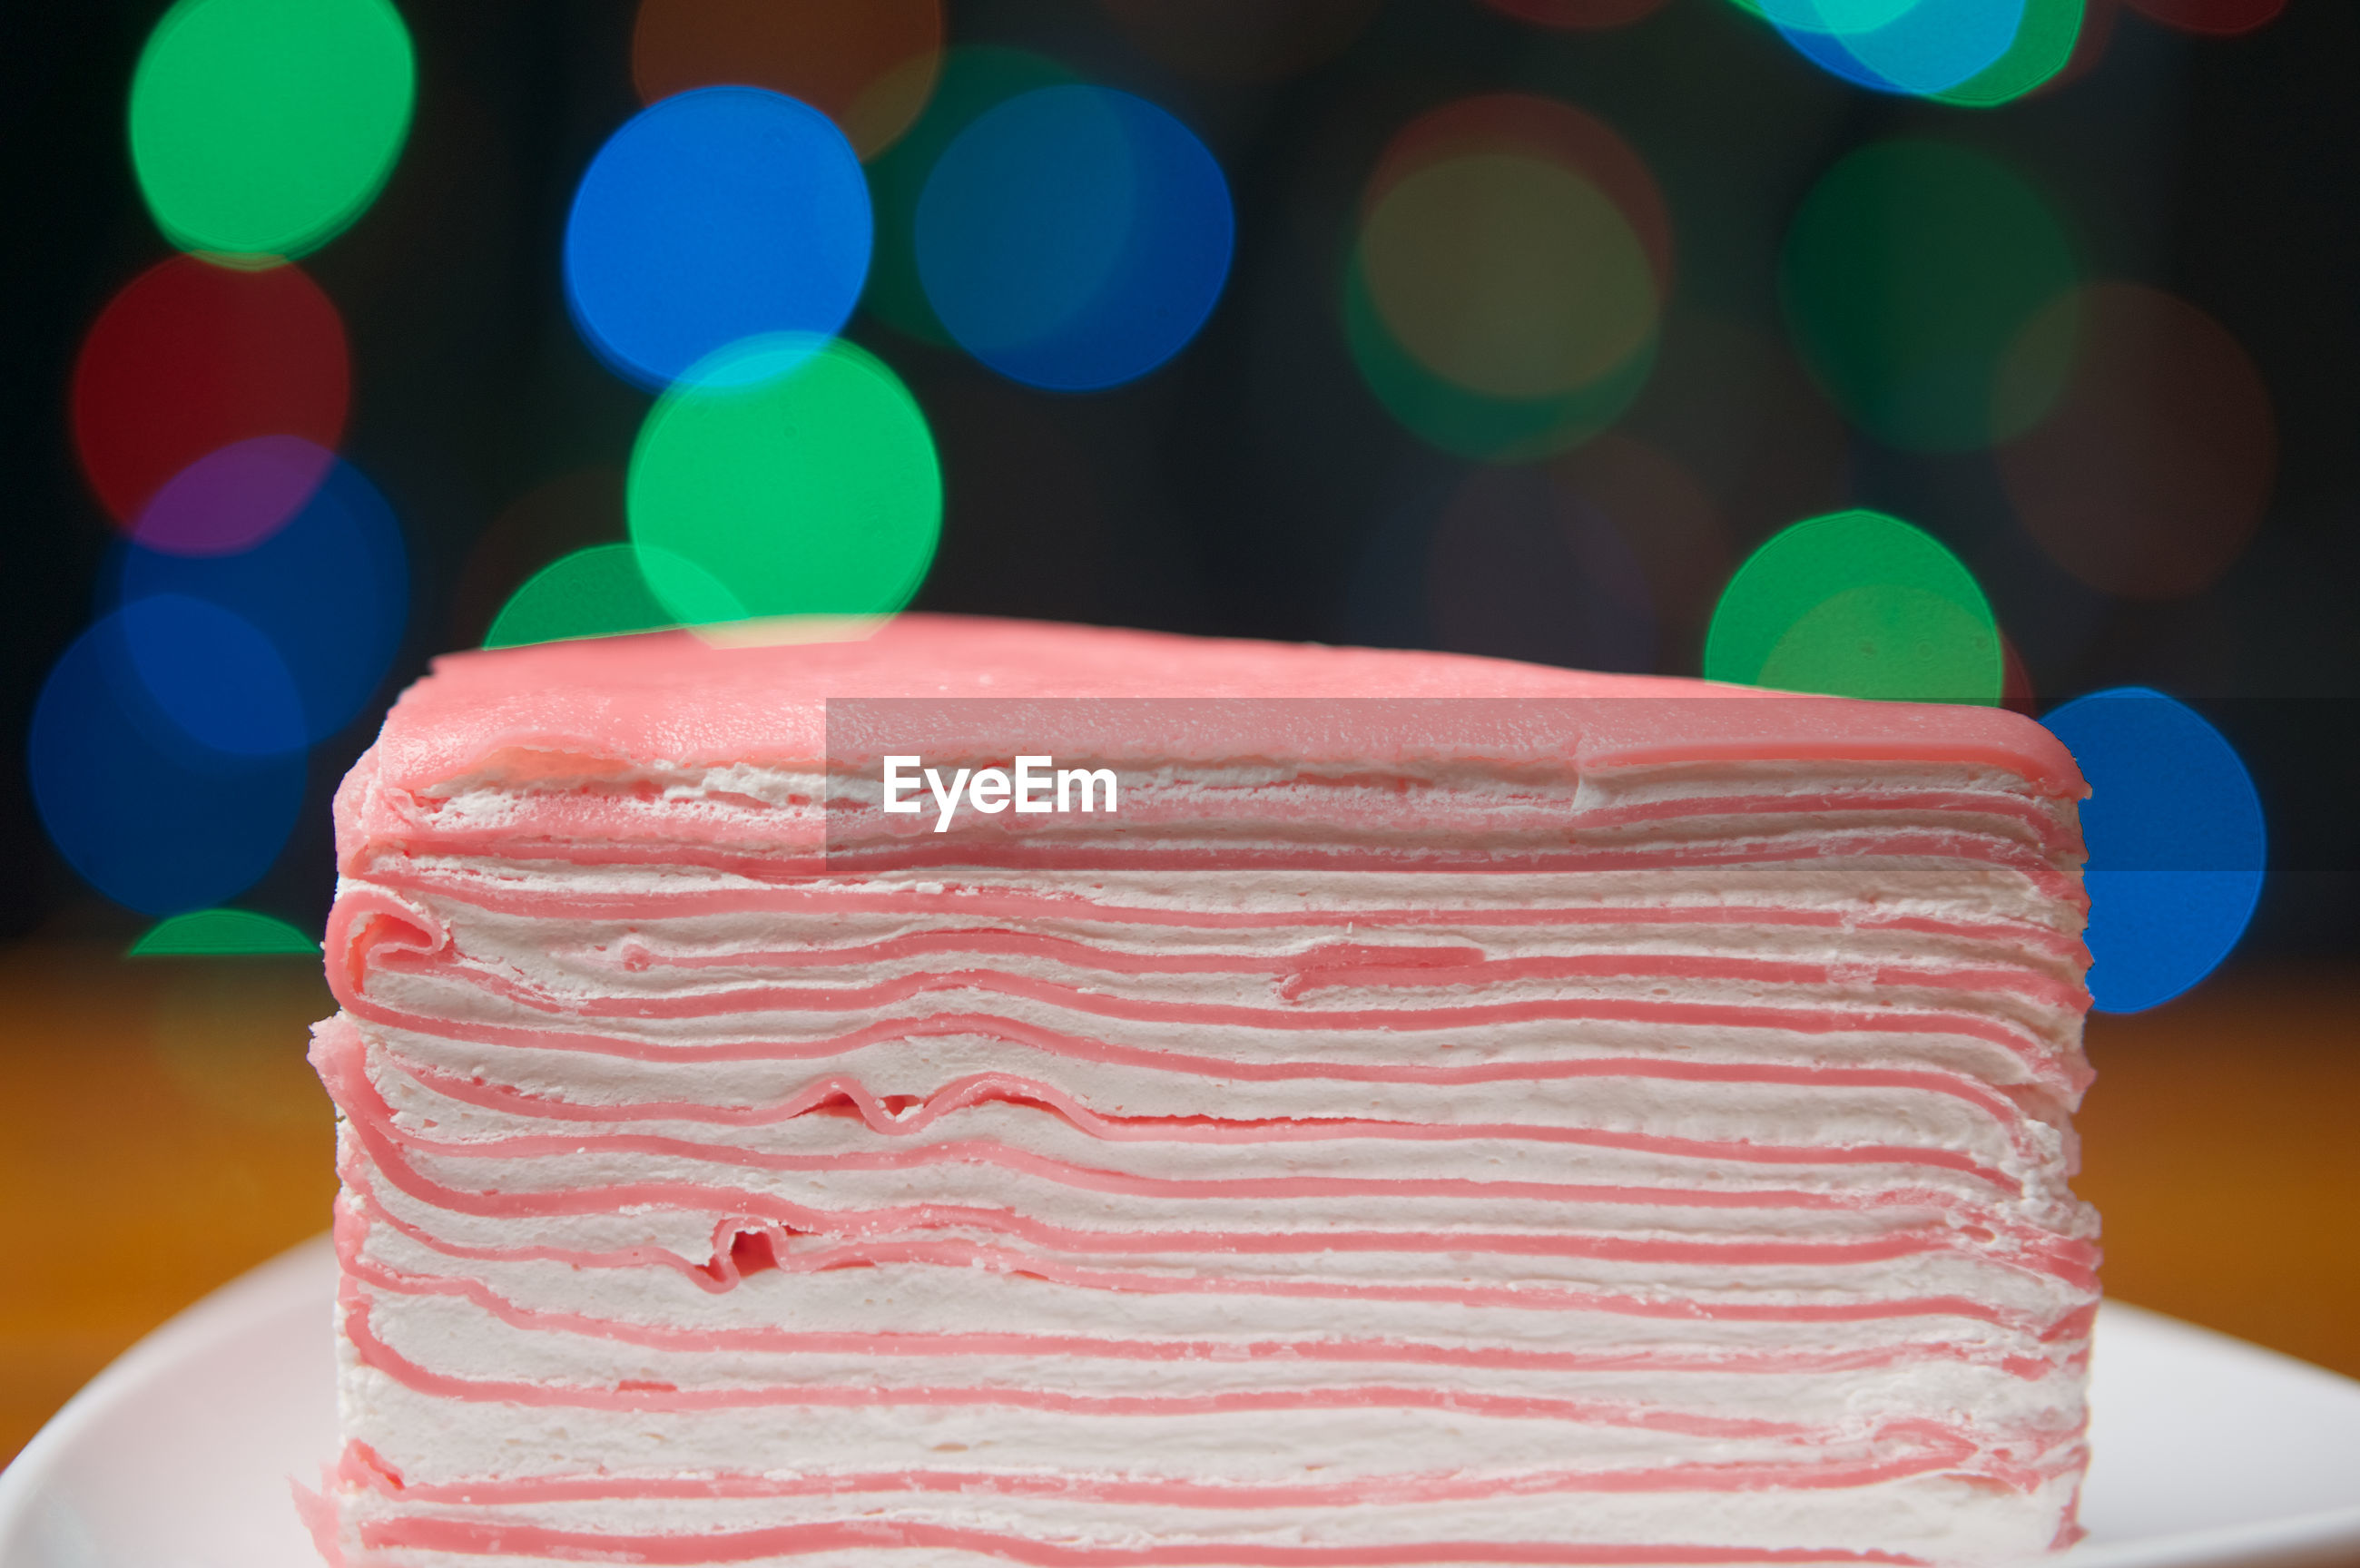 CLOSE-UP OF CAKE ON TABLE AGAINST BLURRED BACKGROUND